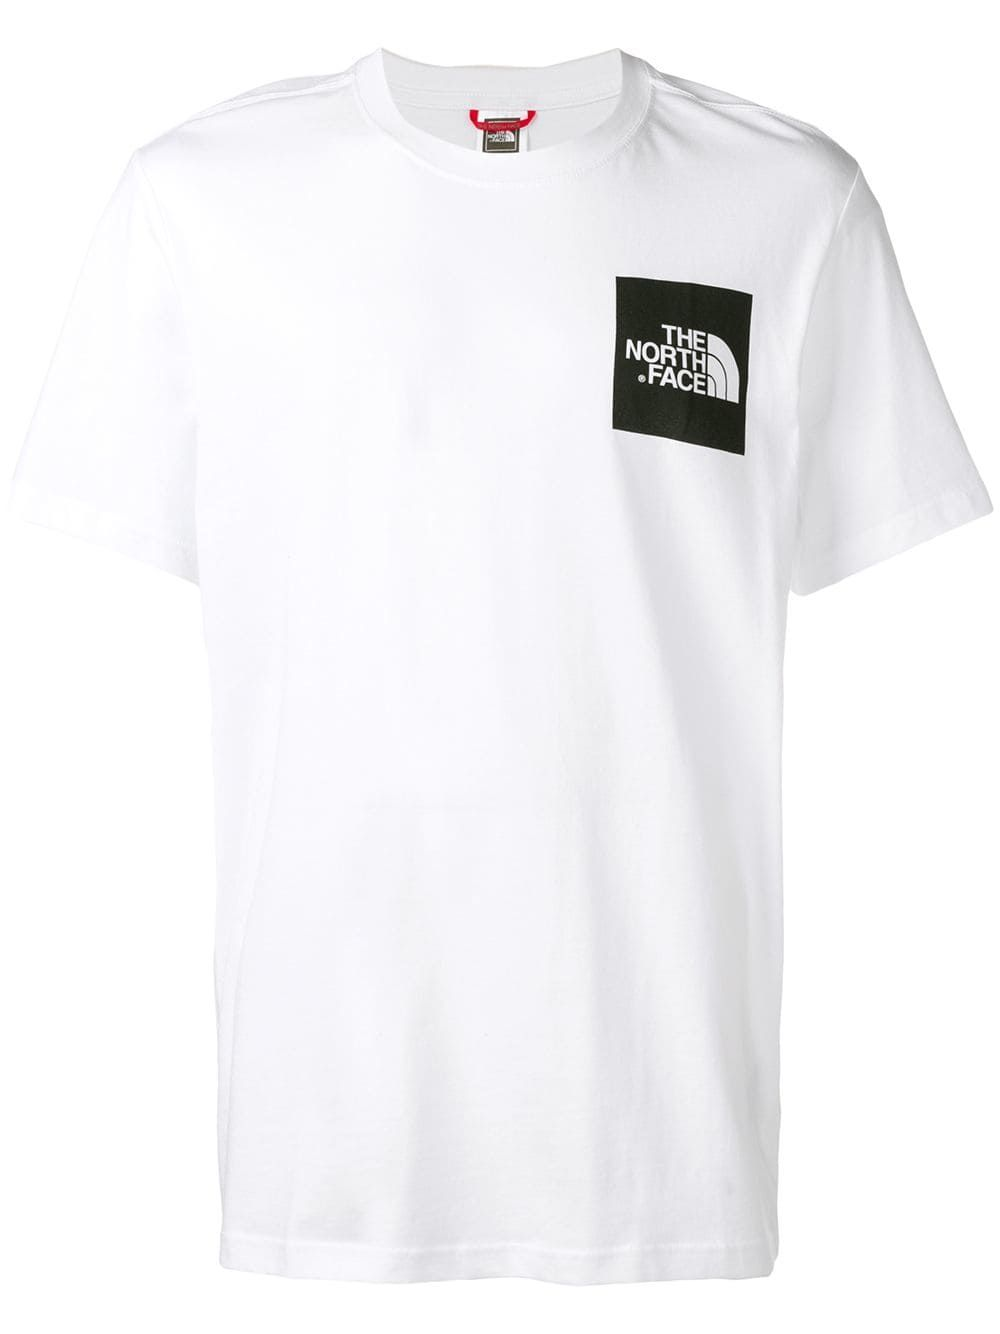 764c7b095 THE NORTH FACE THE NORTH FACE LOGO PATCH T-SHIRT - WHITE ...